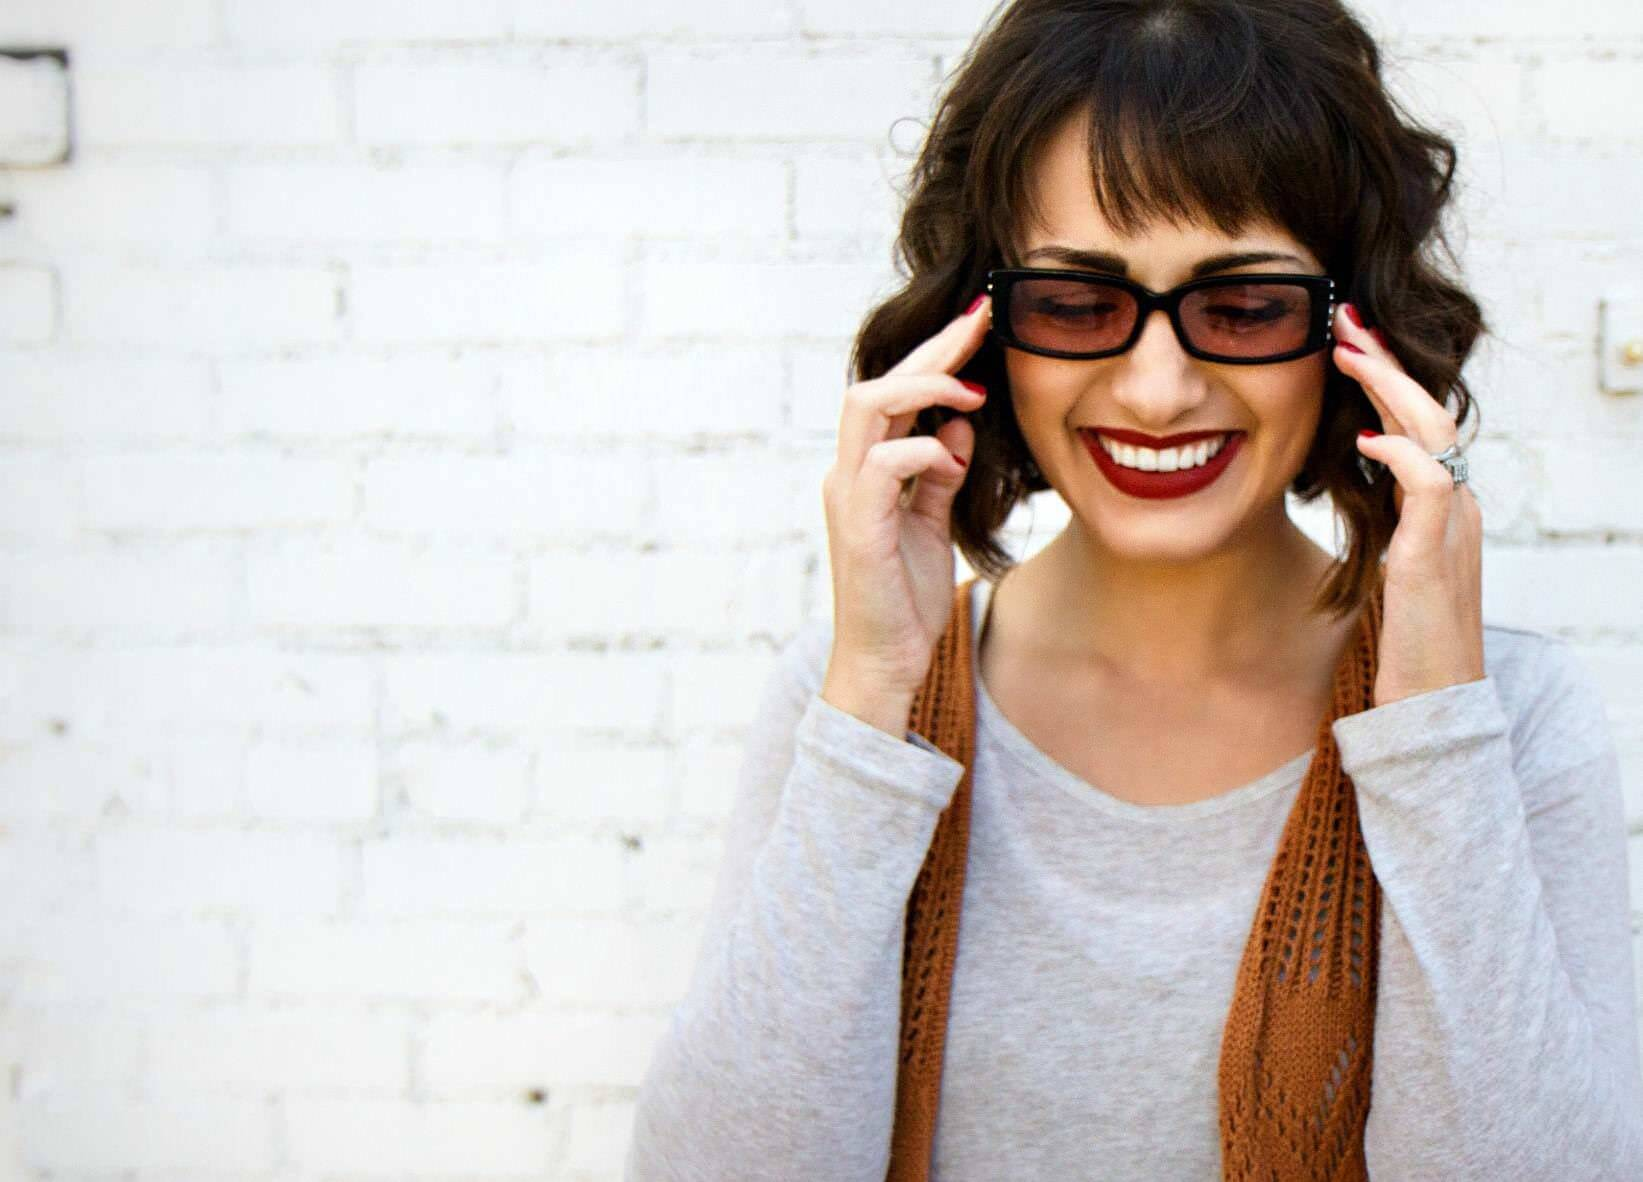 Woman wearing migraine glasses and smiling  sc 1 st  Axon Optics & Migraine Glasses - Learn About Glasses for Migraine azcodes.com